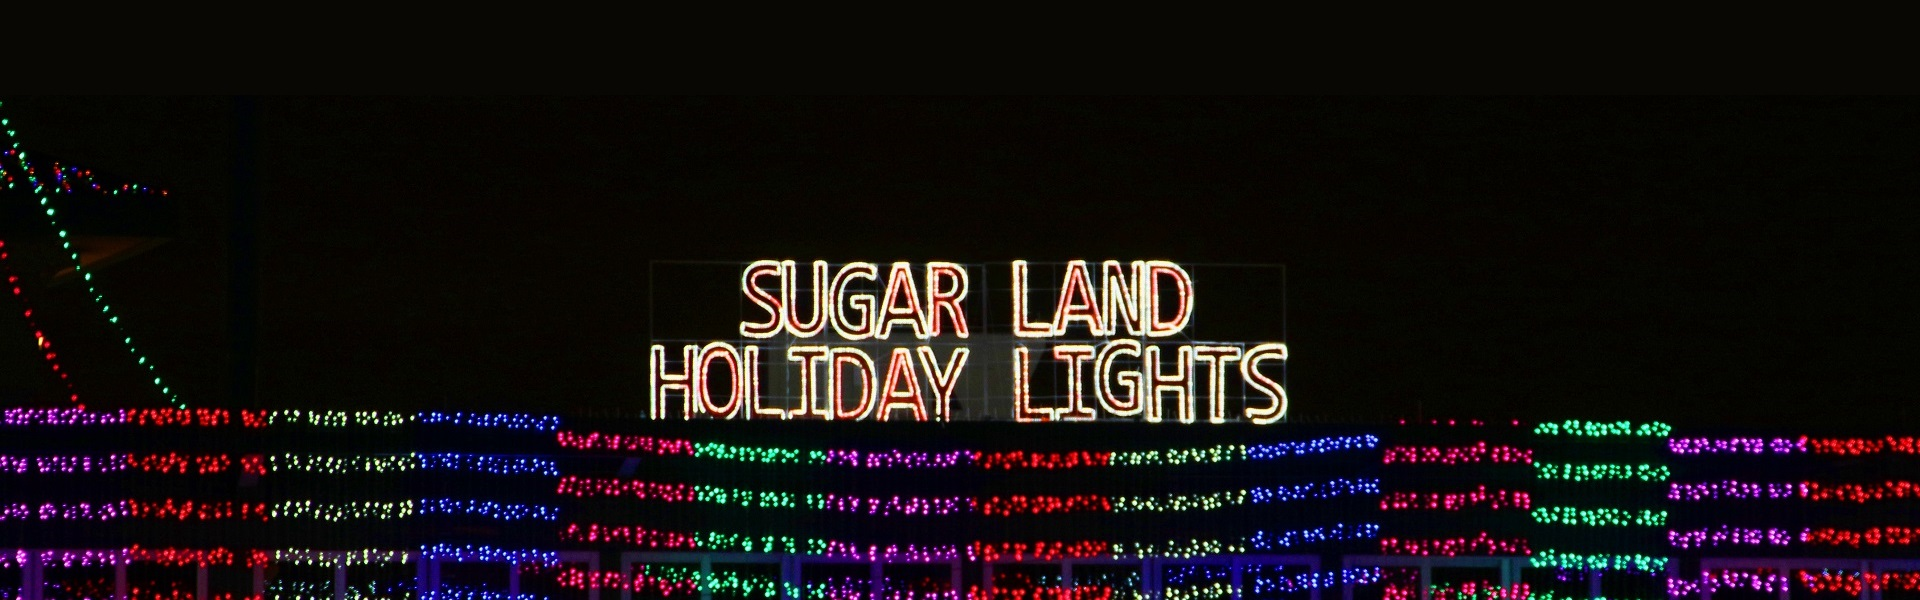 About | Sugar Land Holiday Lights